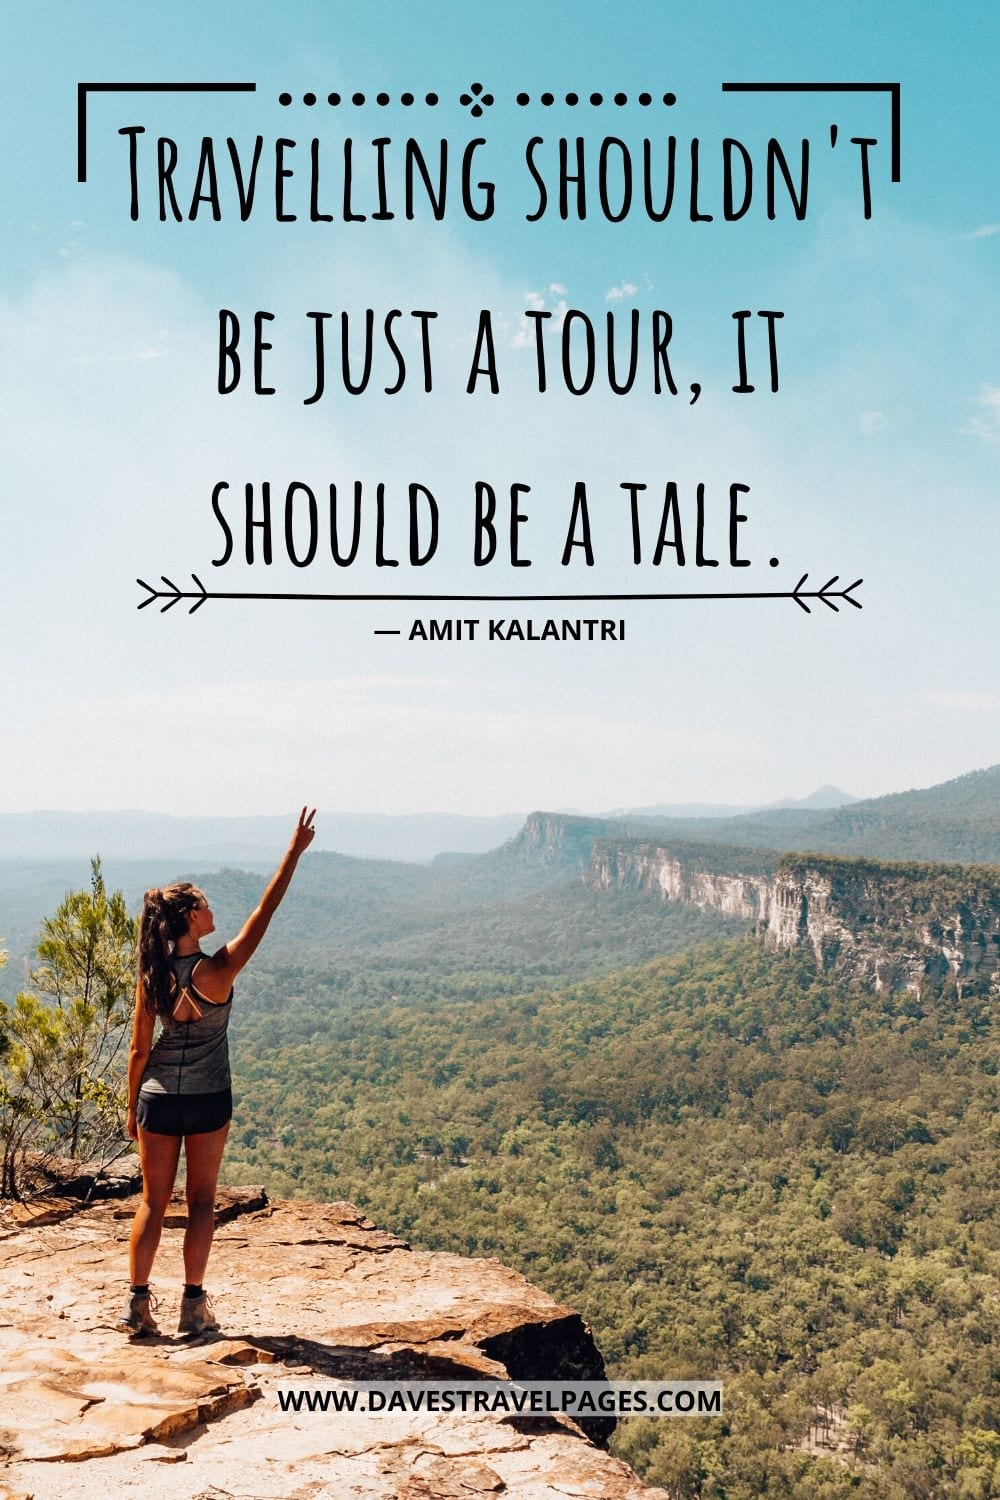 Quotes about travel: Travelling shouldn't be just a tour, it should be a tale. ― Amit Kalantri